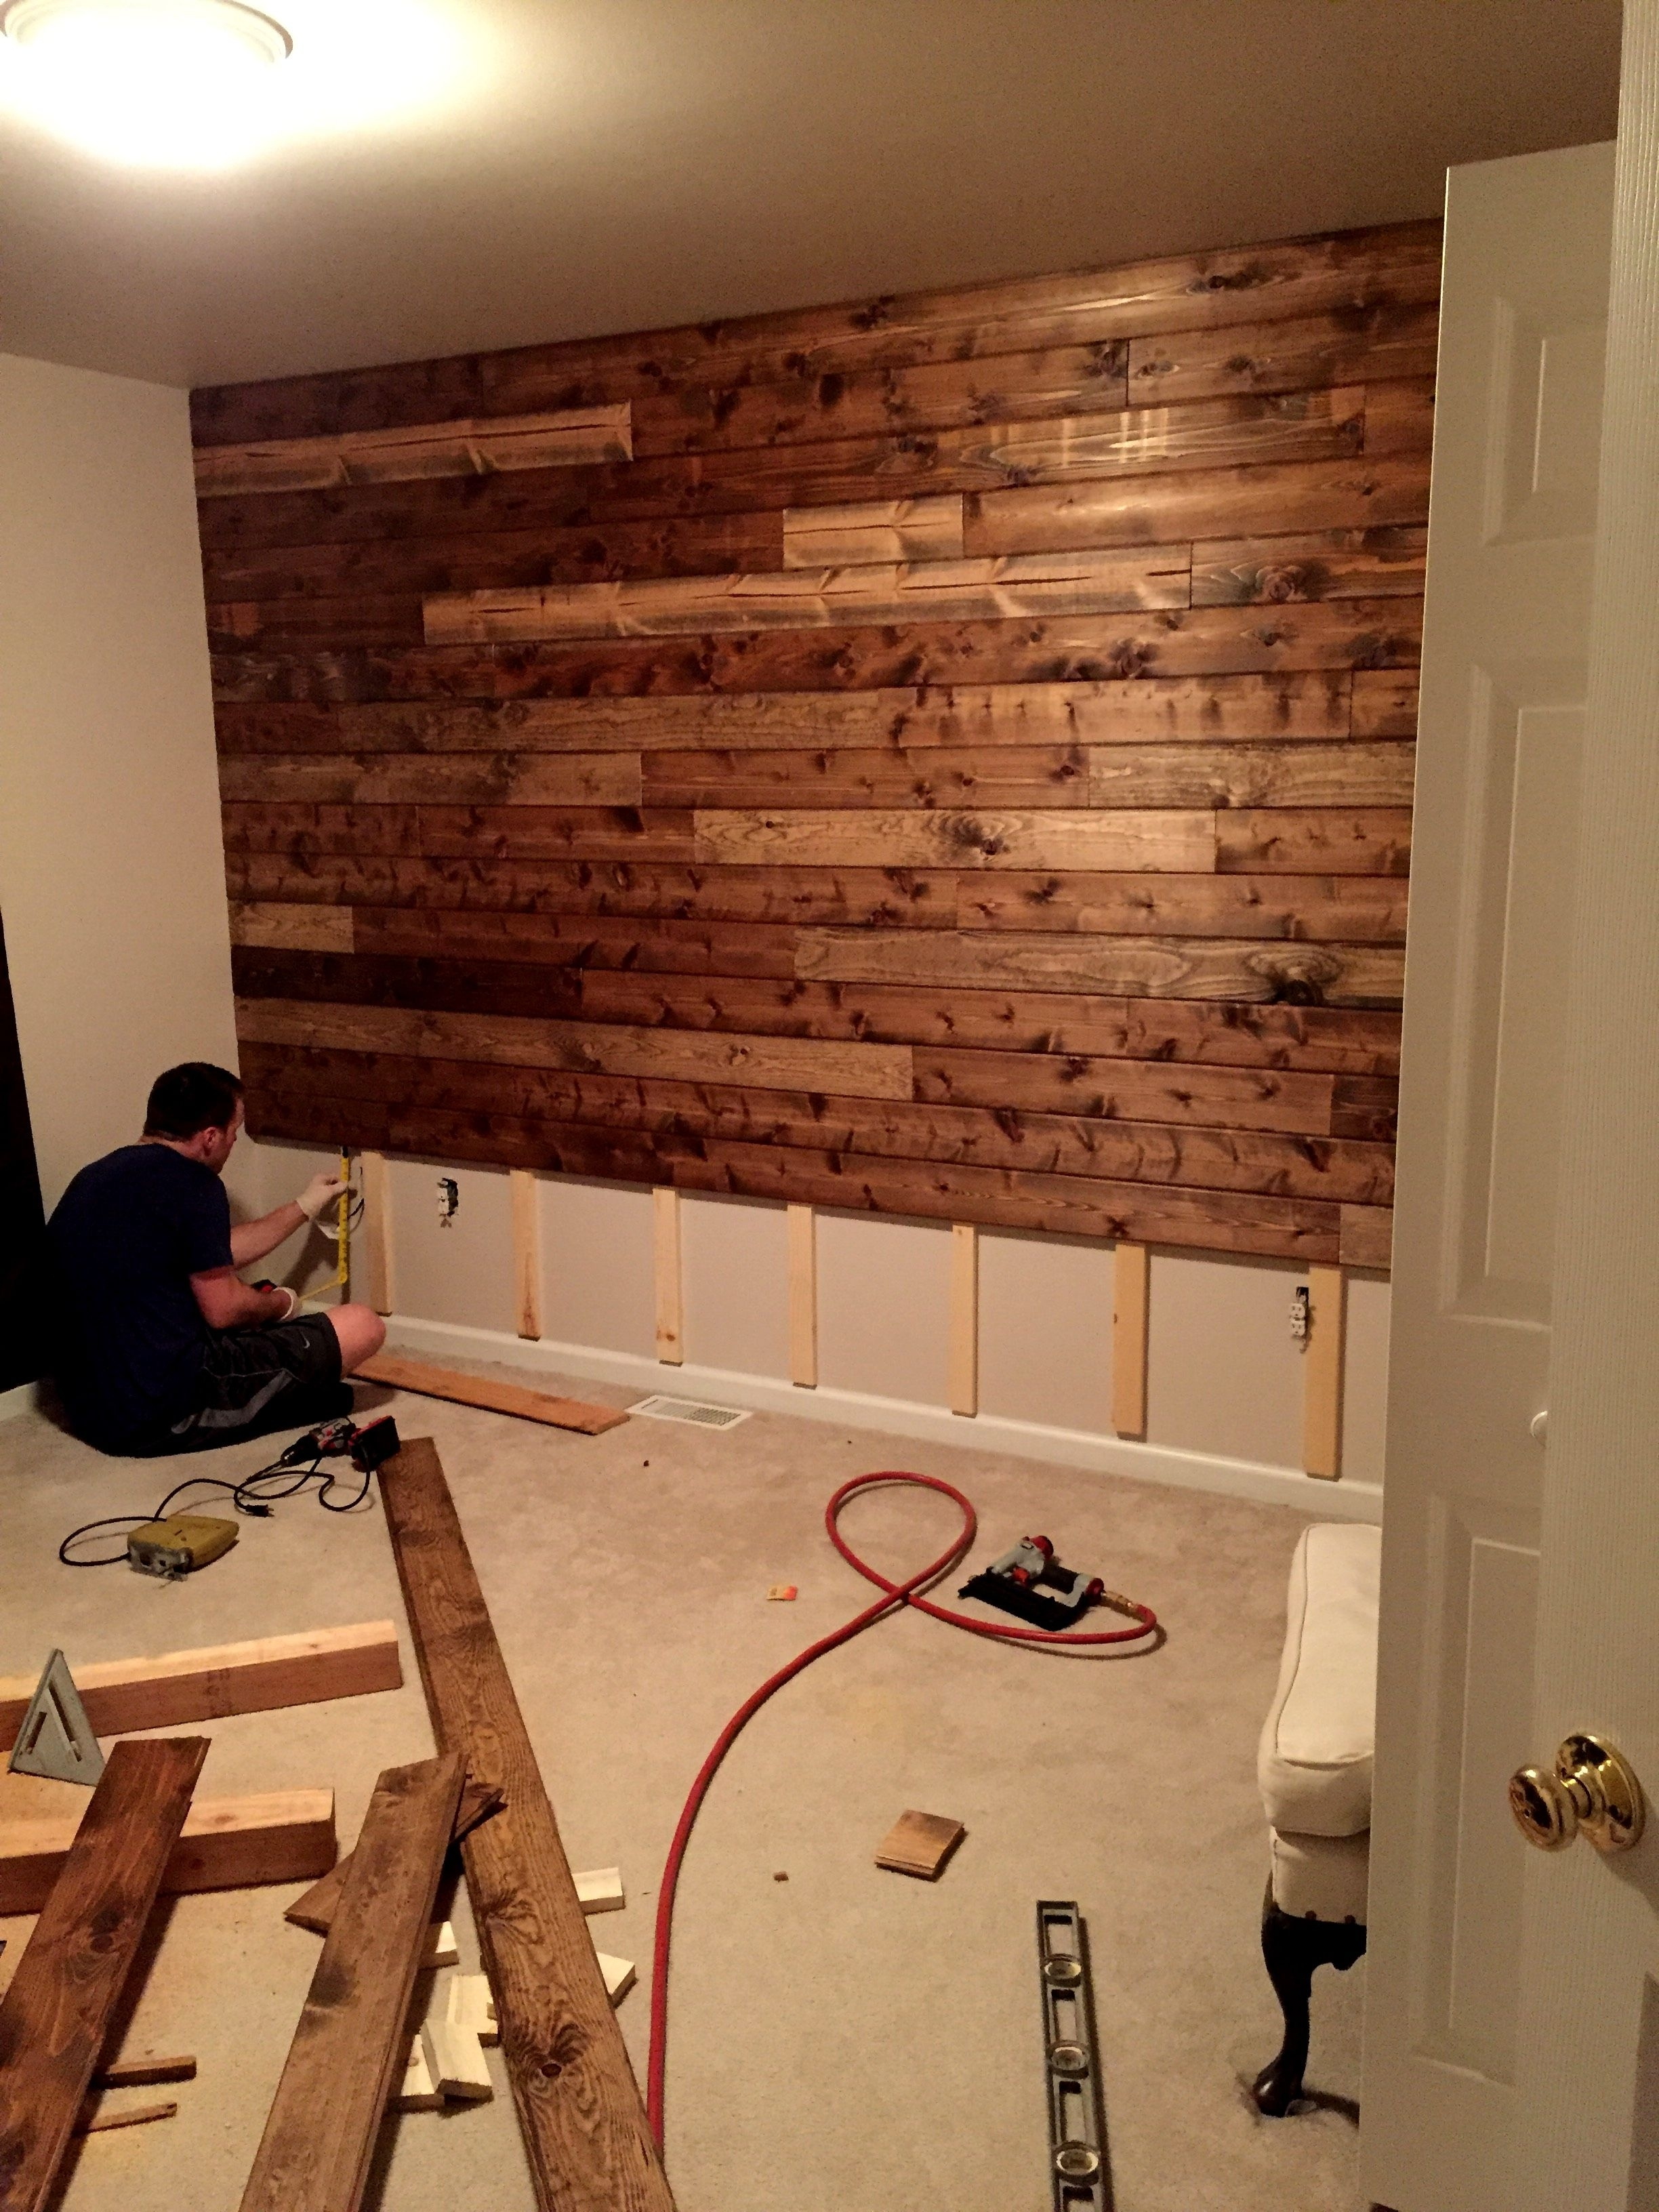 Wooden Accent Wall Tutorial | Country Decor | Pinterest With Most Recent Wall Accents With Pallets (View 10 of 15)